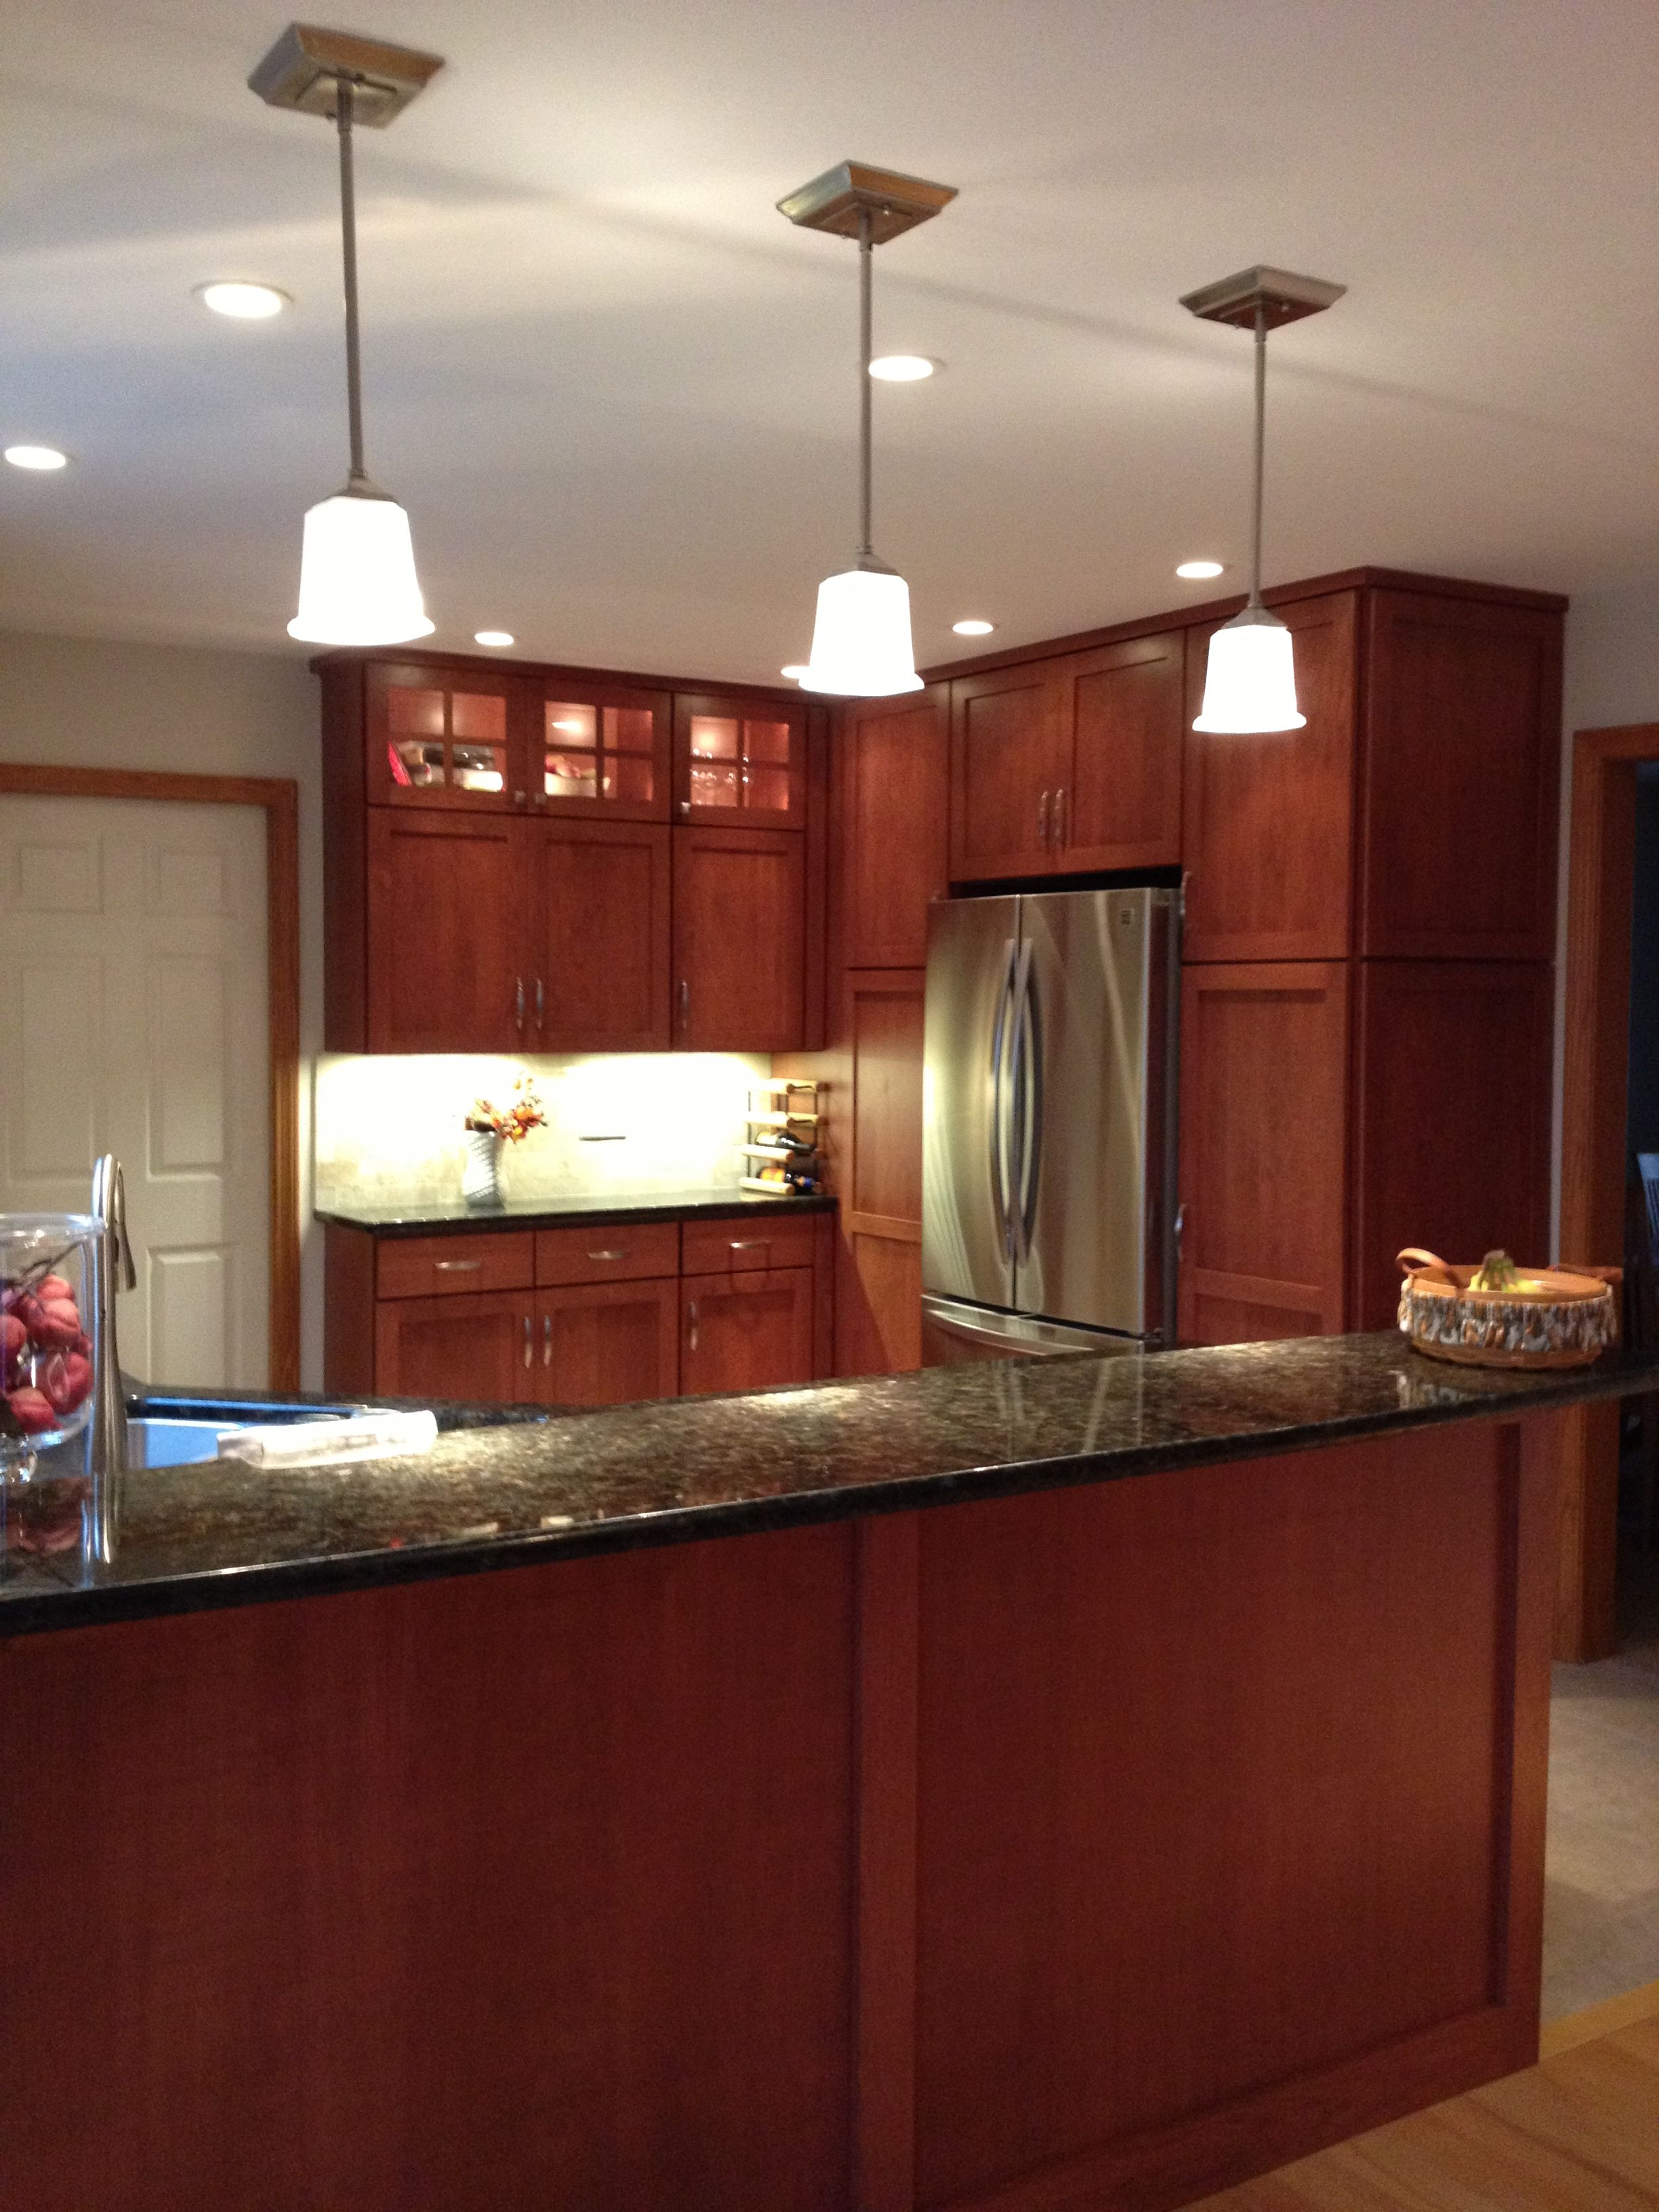 New shaker style cherry cabinets replace a